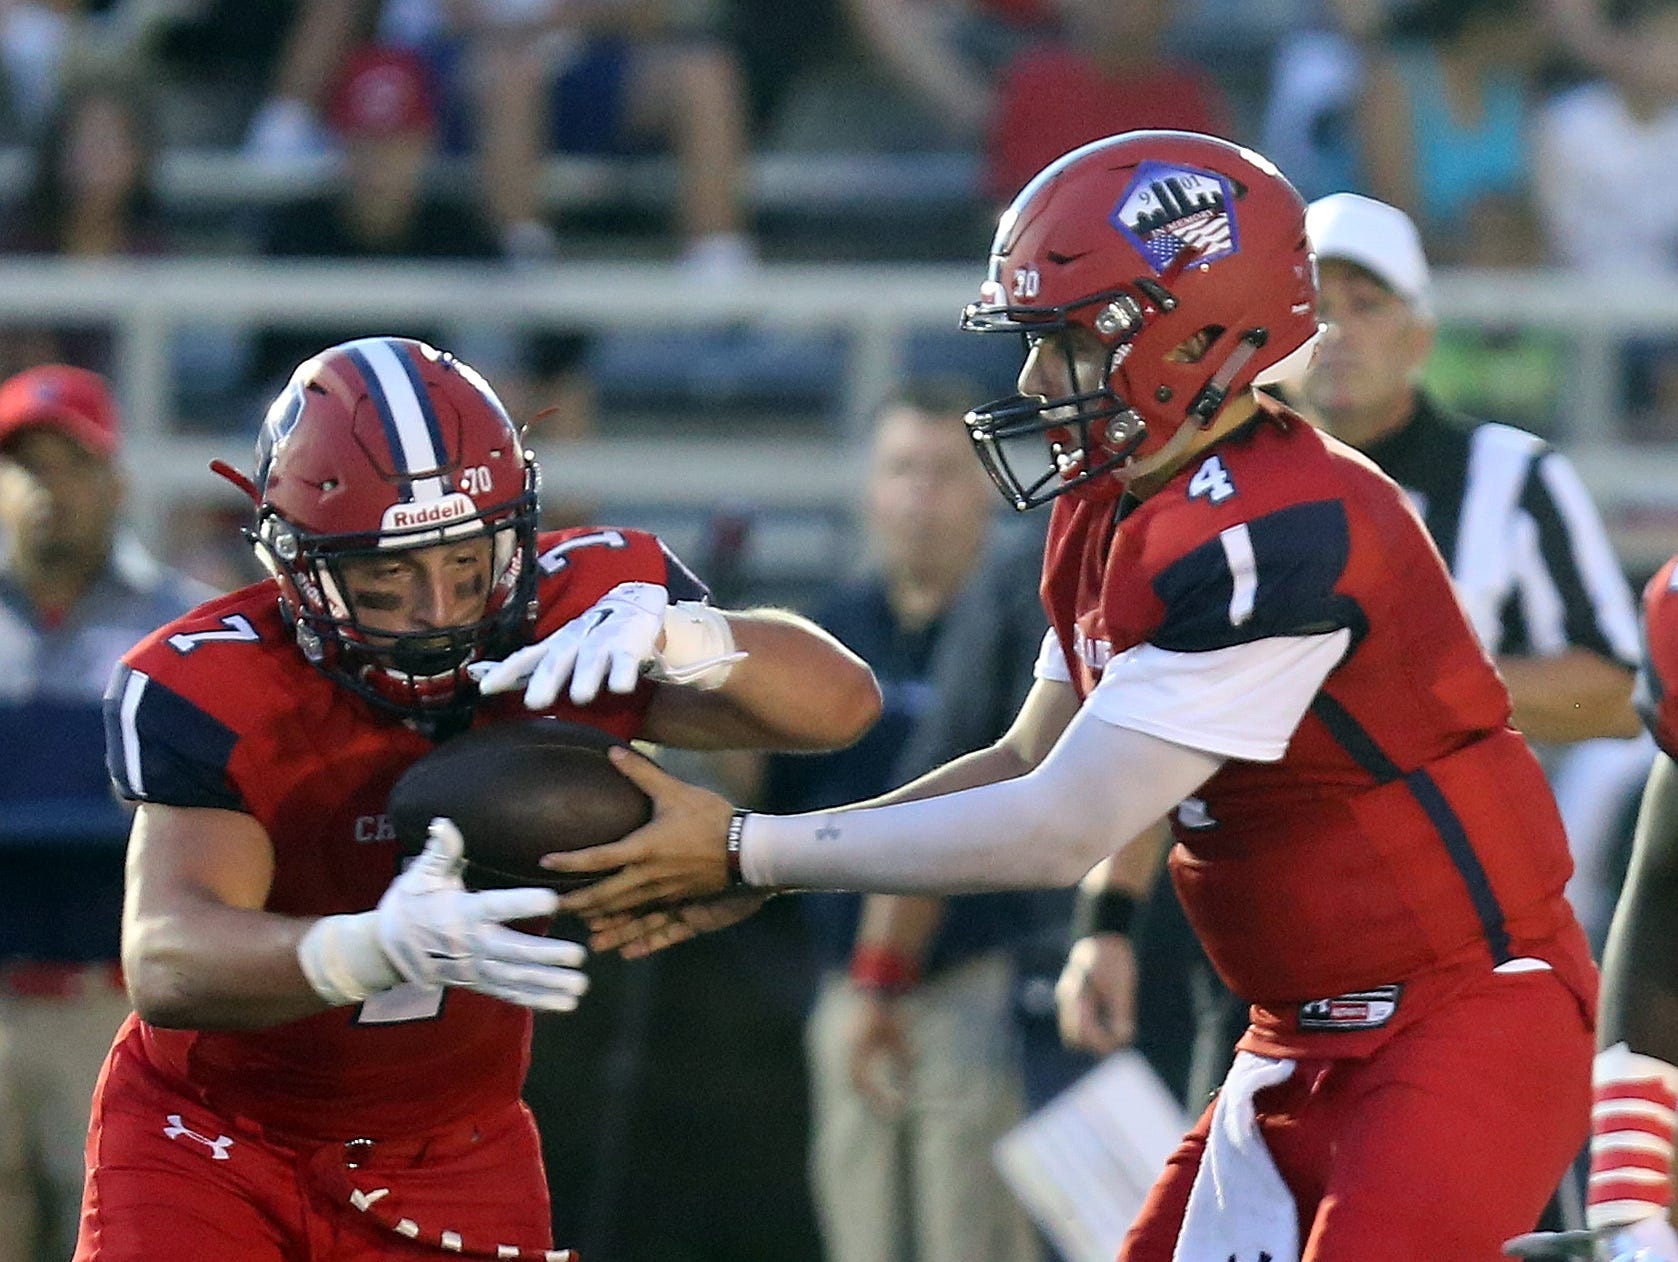 Stepinac's Quarterback Michael Nicosia (4) hands the ball off to Antonio Giannico (7) during the Joseph R. Riverso Memorial football game against Cornwall at the high school in White Plains on Sept. 9, 3016.